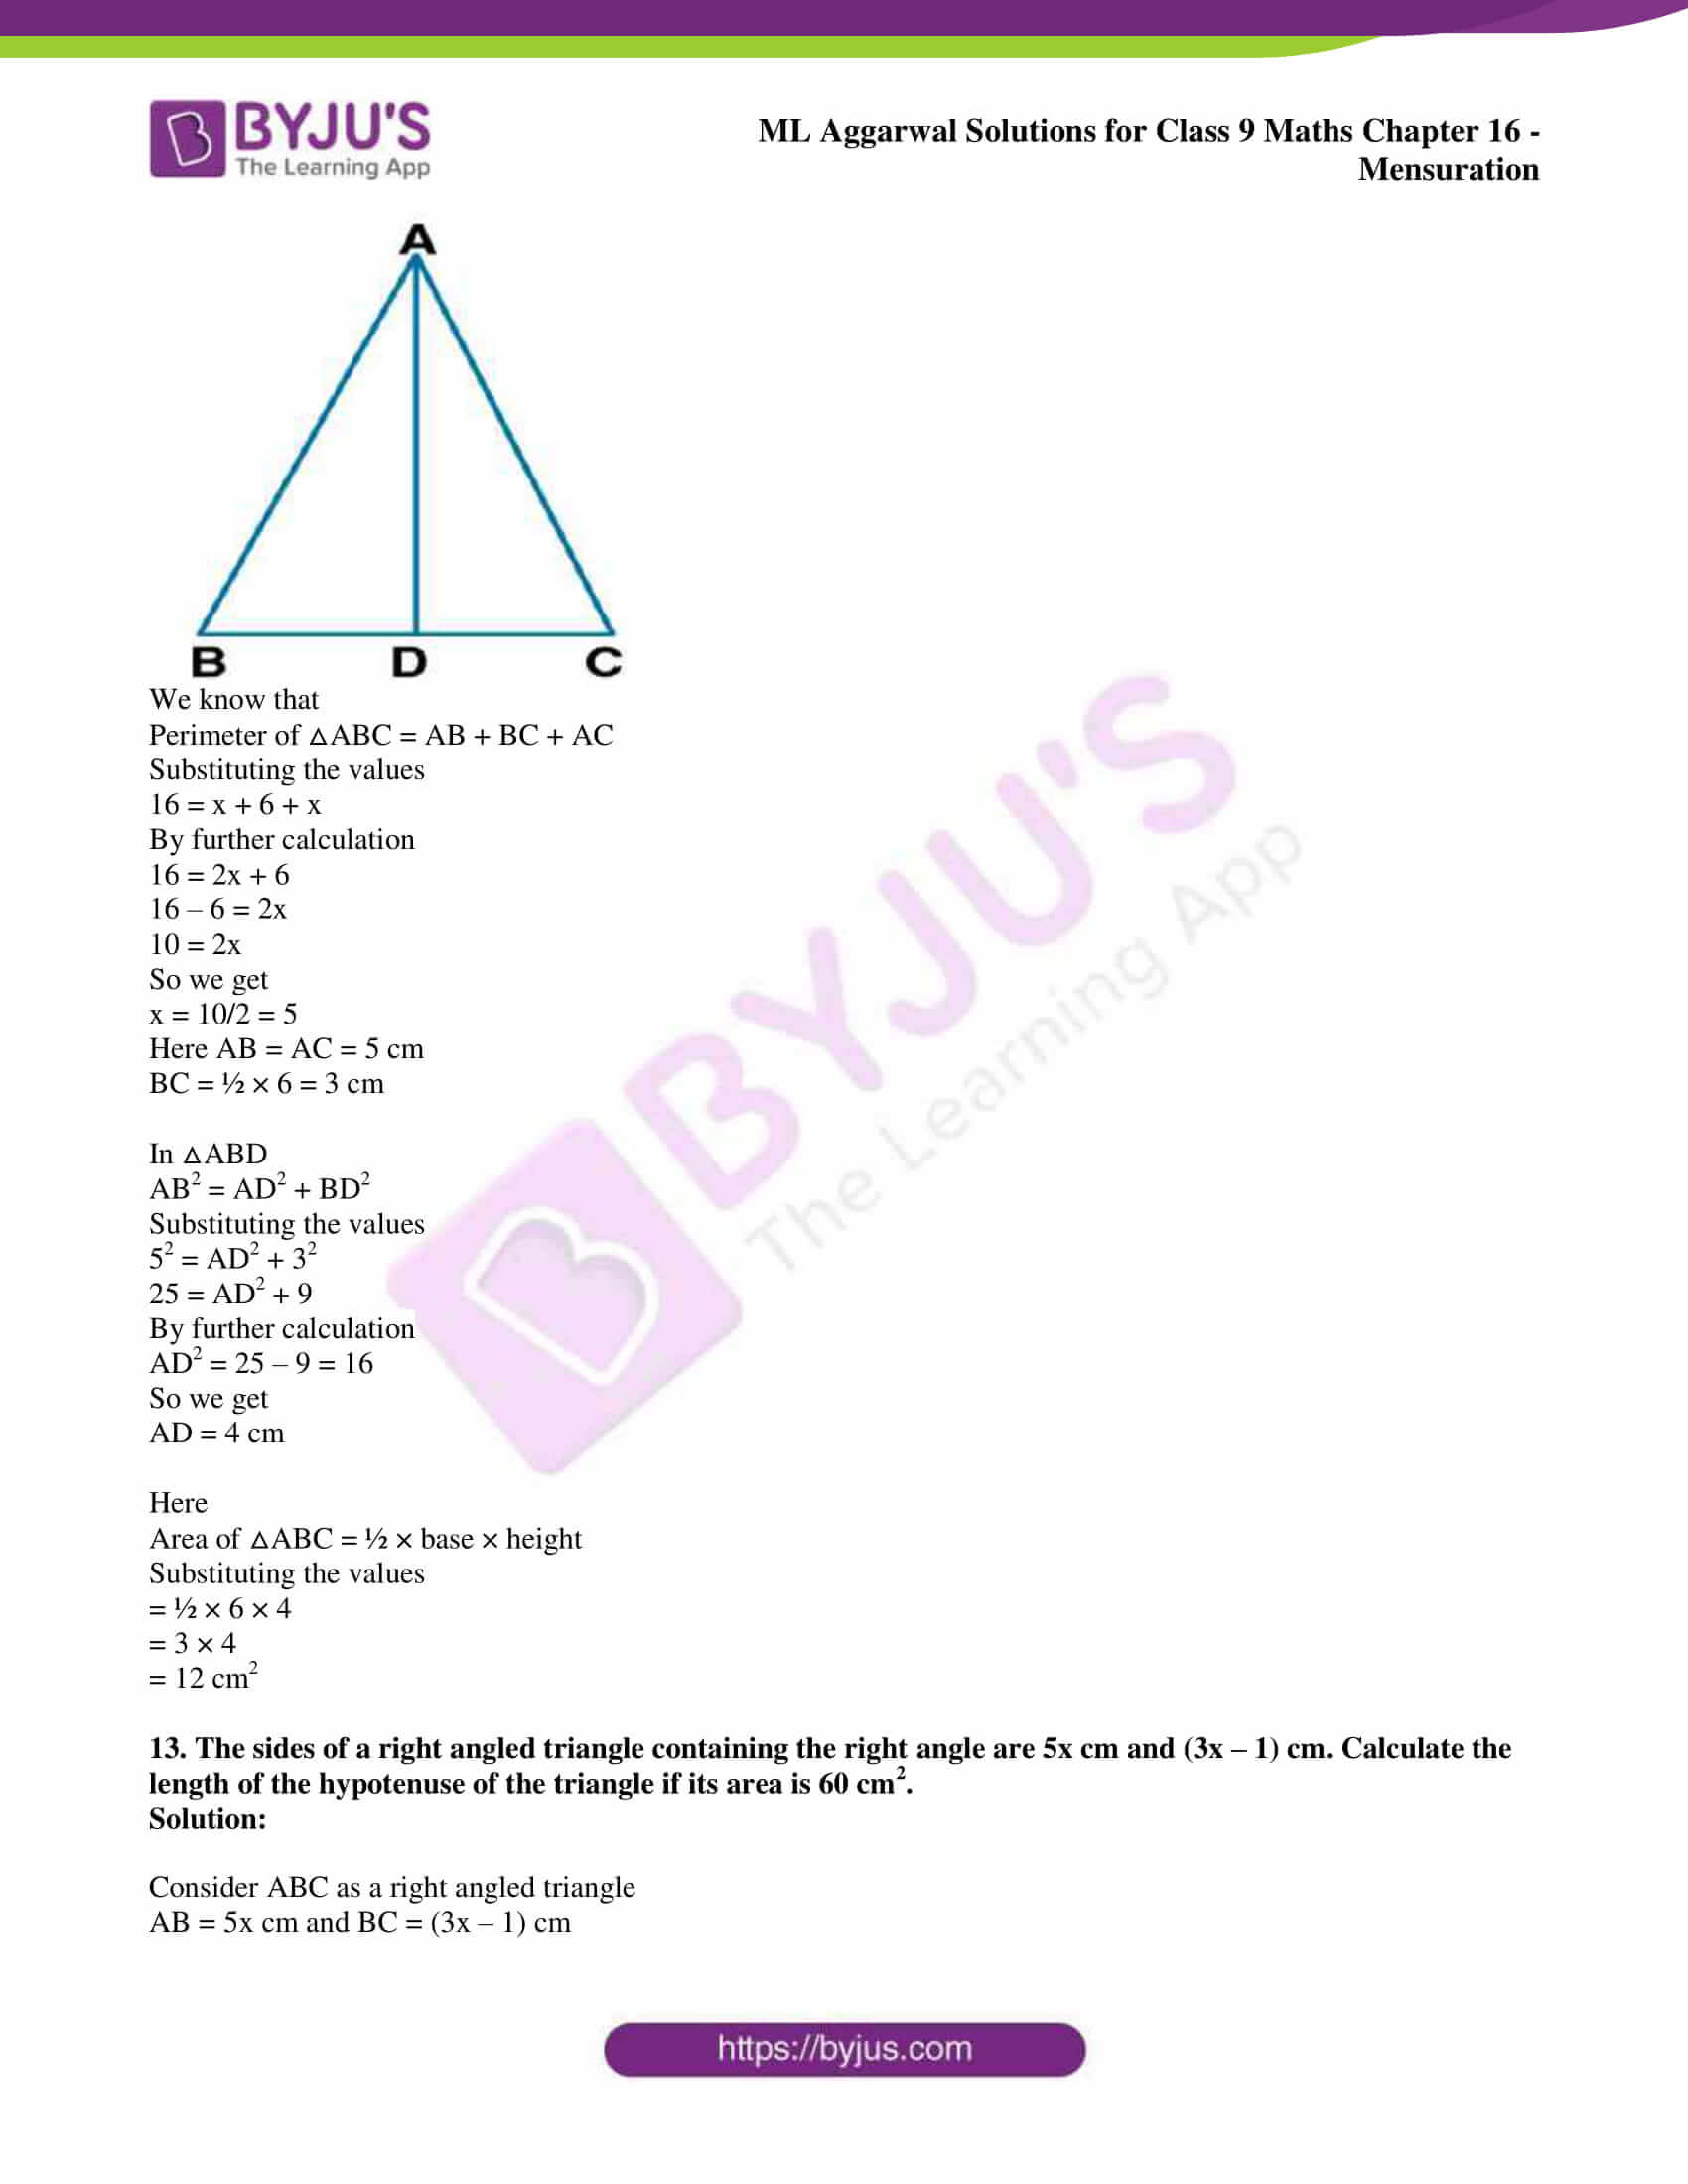 ml aggarwal solutions for class 9 maths chapter 16 012